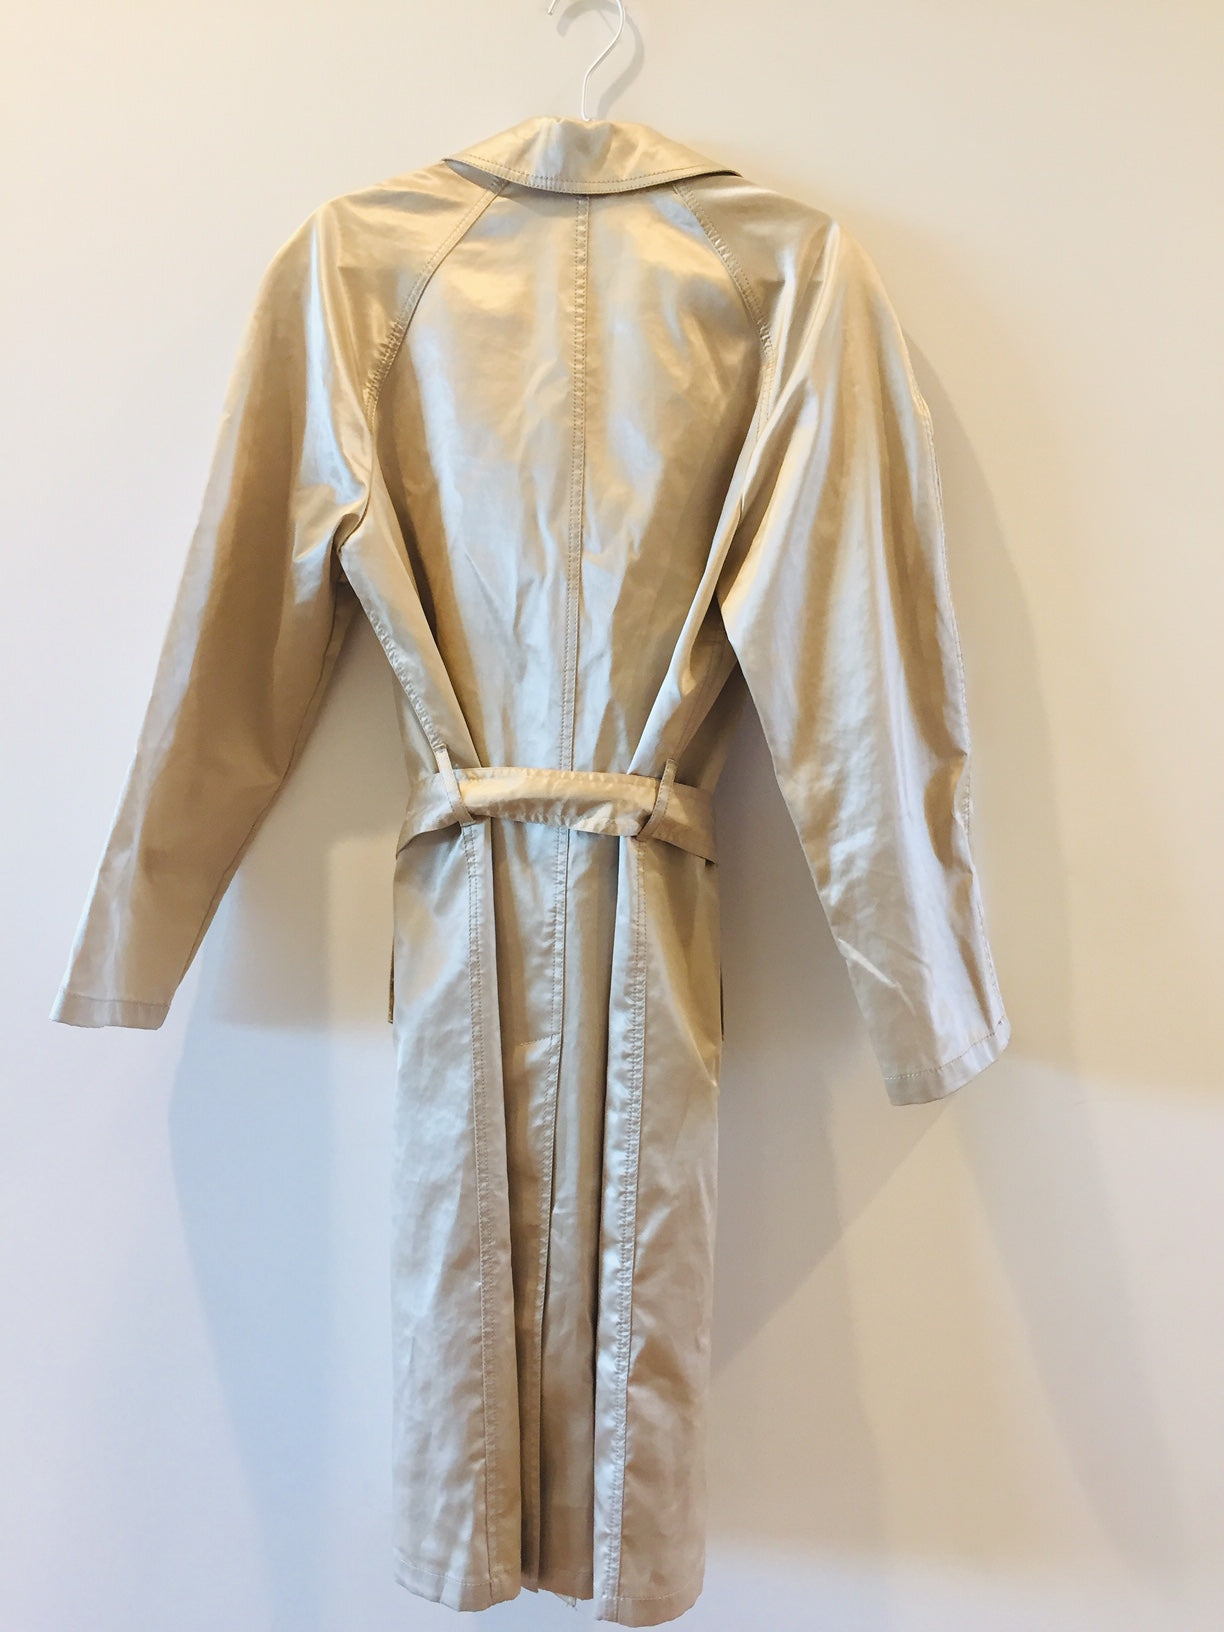 Prada Vintage Shiny Champagne Off White Cotton Silk Belt Rain Coat Jacket Trench Made in Italy 42 SM